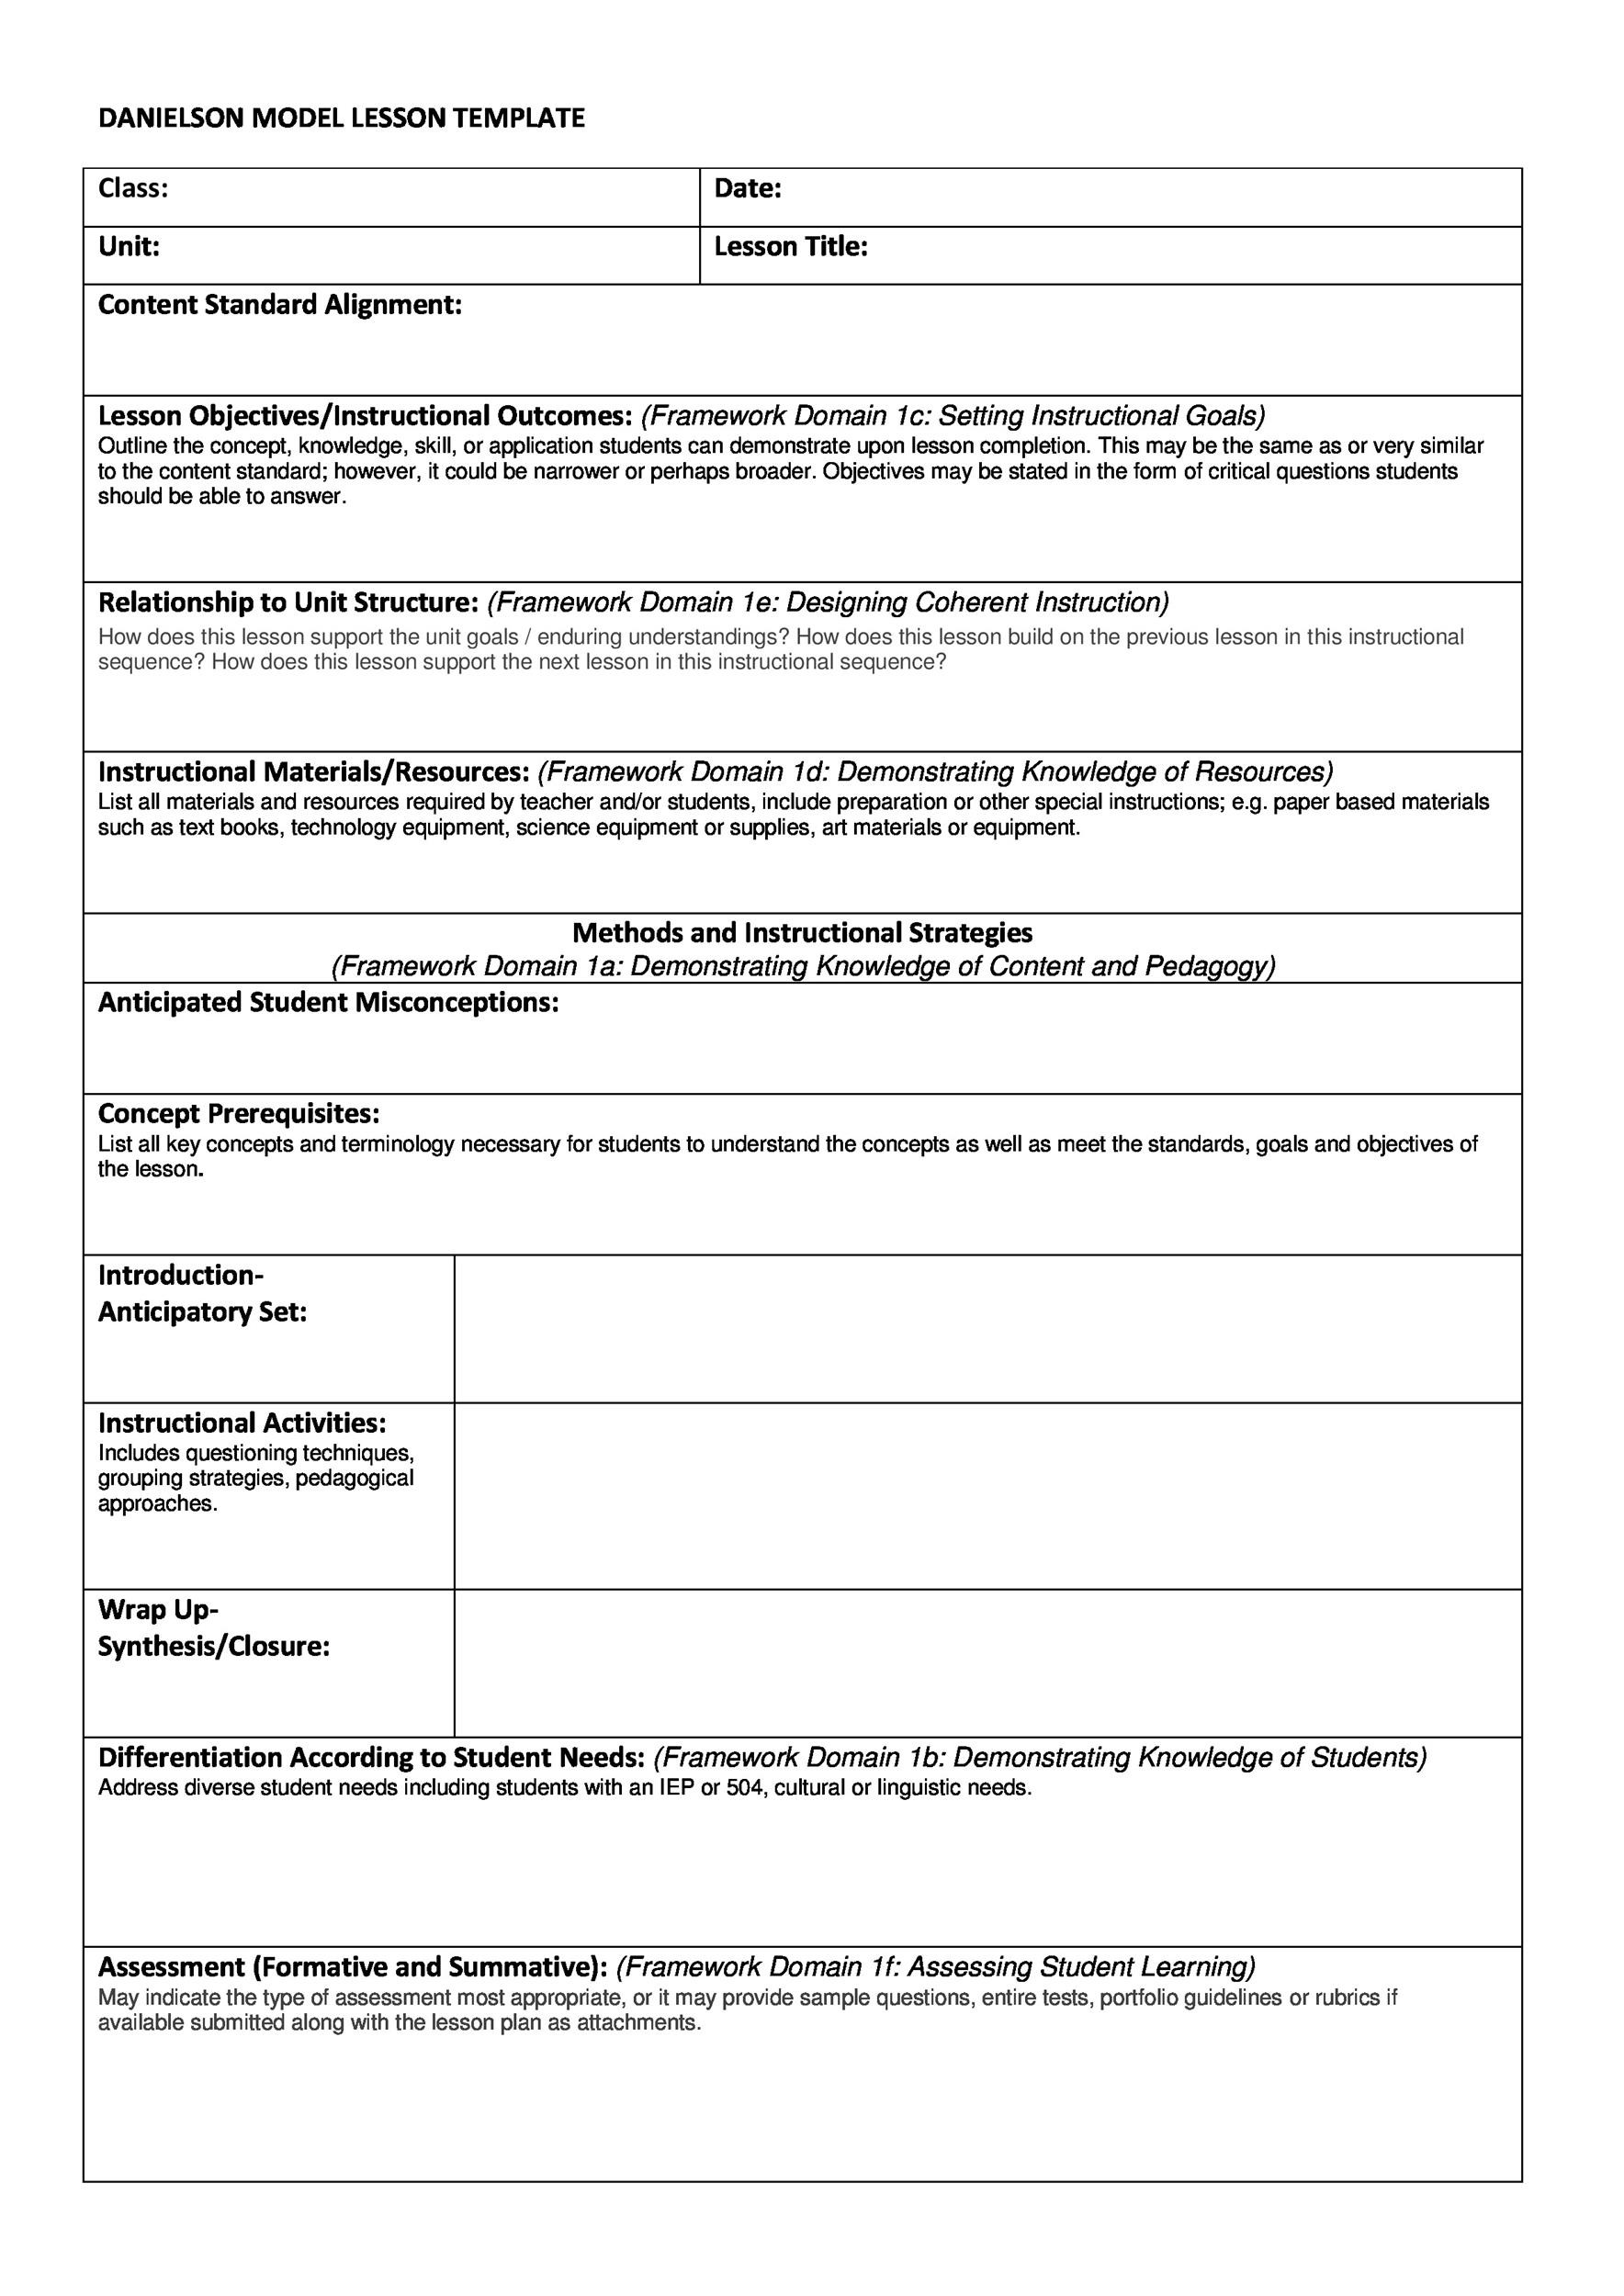 Lesson Format Template Kleobeachfixco - Lesson plan outline template